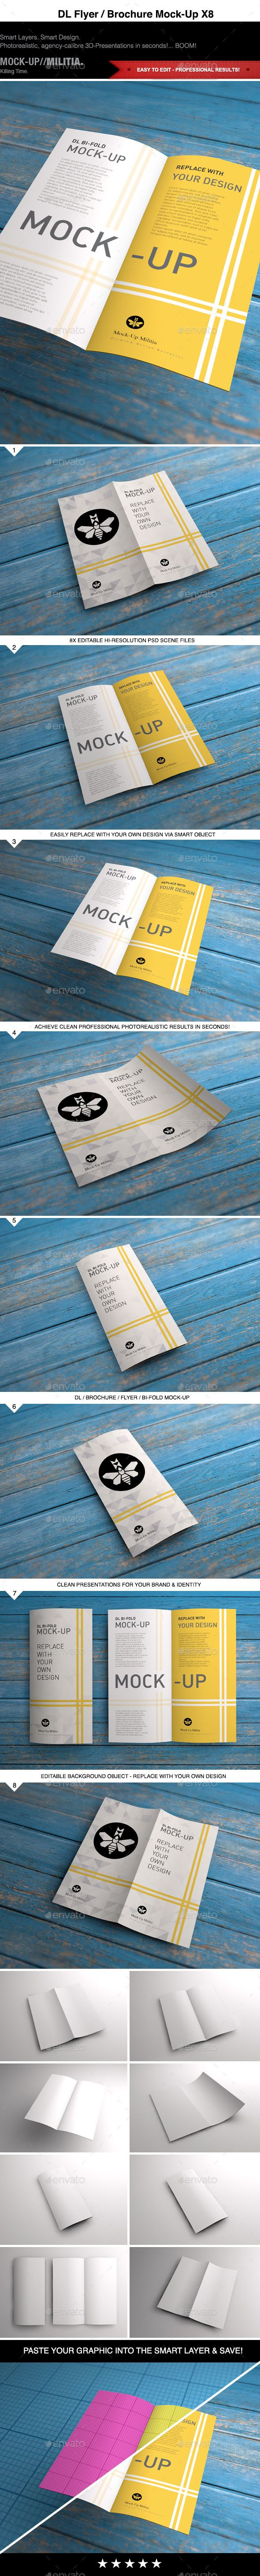 DL | Flyer | Brochure | Leaflet | Bi-Fold Mock-Up (Photoshop PSD, CS, 2480x1754, 8x5, 2 fold, 210mmx99mm, 4 pager, 4pp, beach chic, bi-fold, brand identity, brochure, dl, double-sided, eco stock, envelope, floating brochure, floating pages, flyer, folded, gatefold, id, interior, leaflet, marketing, mock-up, mockup, pamphlet, print, promotional, third A4, vintage surface, wooden background)